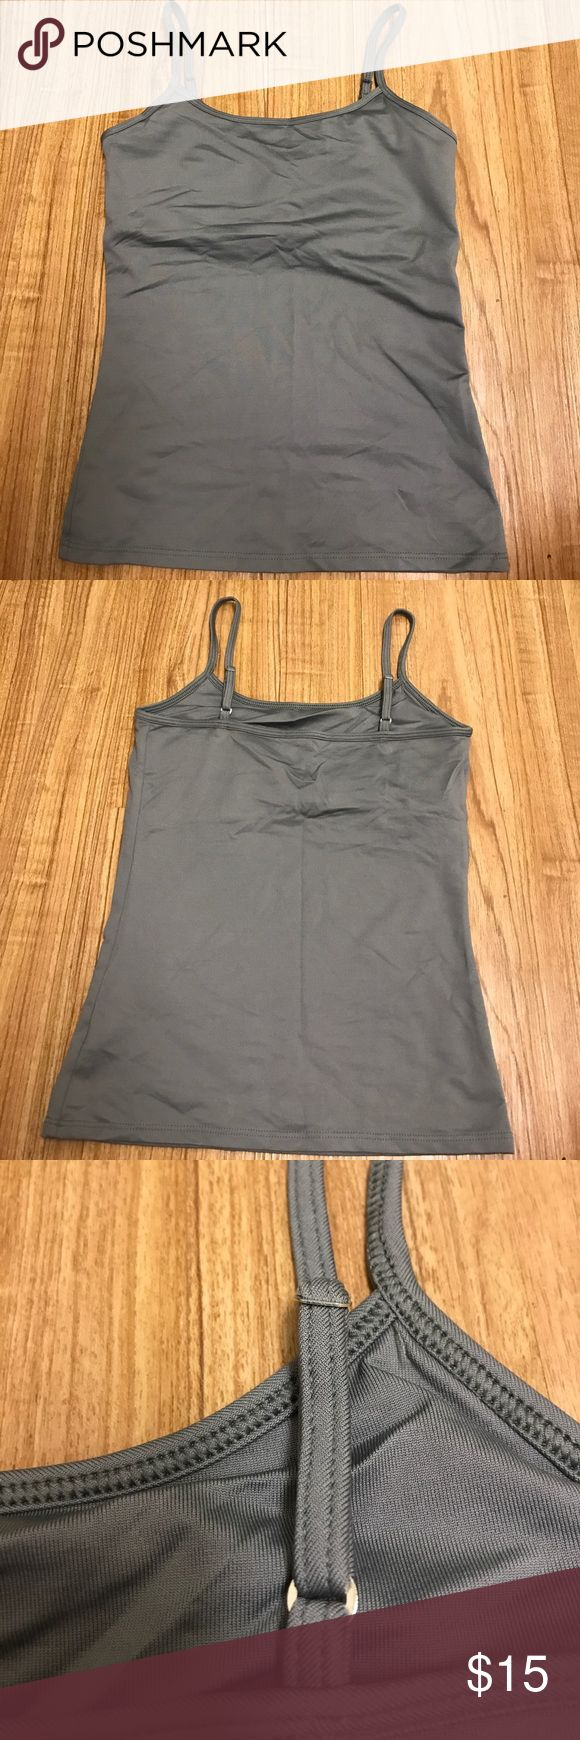 White House Black Market gunmetal gray camisole EUC White House Black Market gunmetal gray camisole with adjustable straps and built in shelf bra. No damages White House Black Market Tops Camisoles